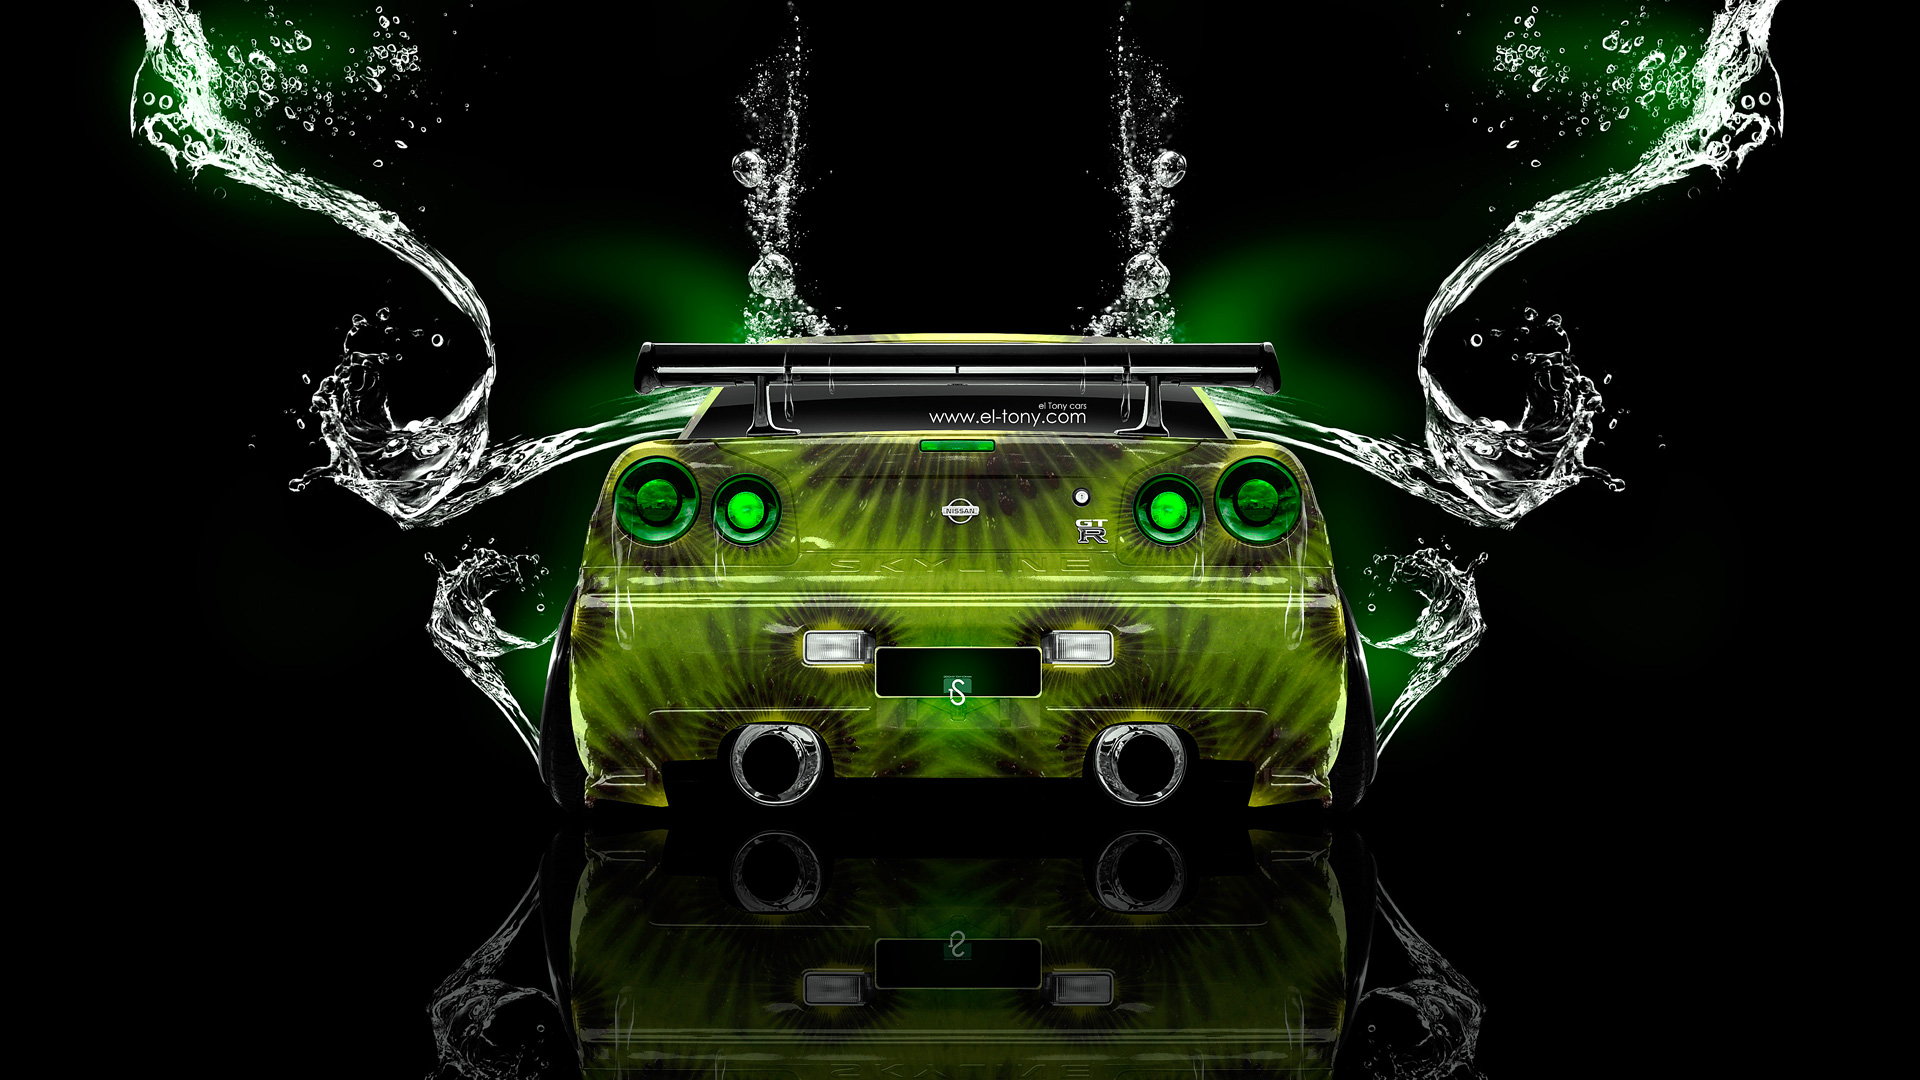 Superbe Nissan Skyline GTR R34 Fantasy Water Kiwi Car 2014 | El Tony